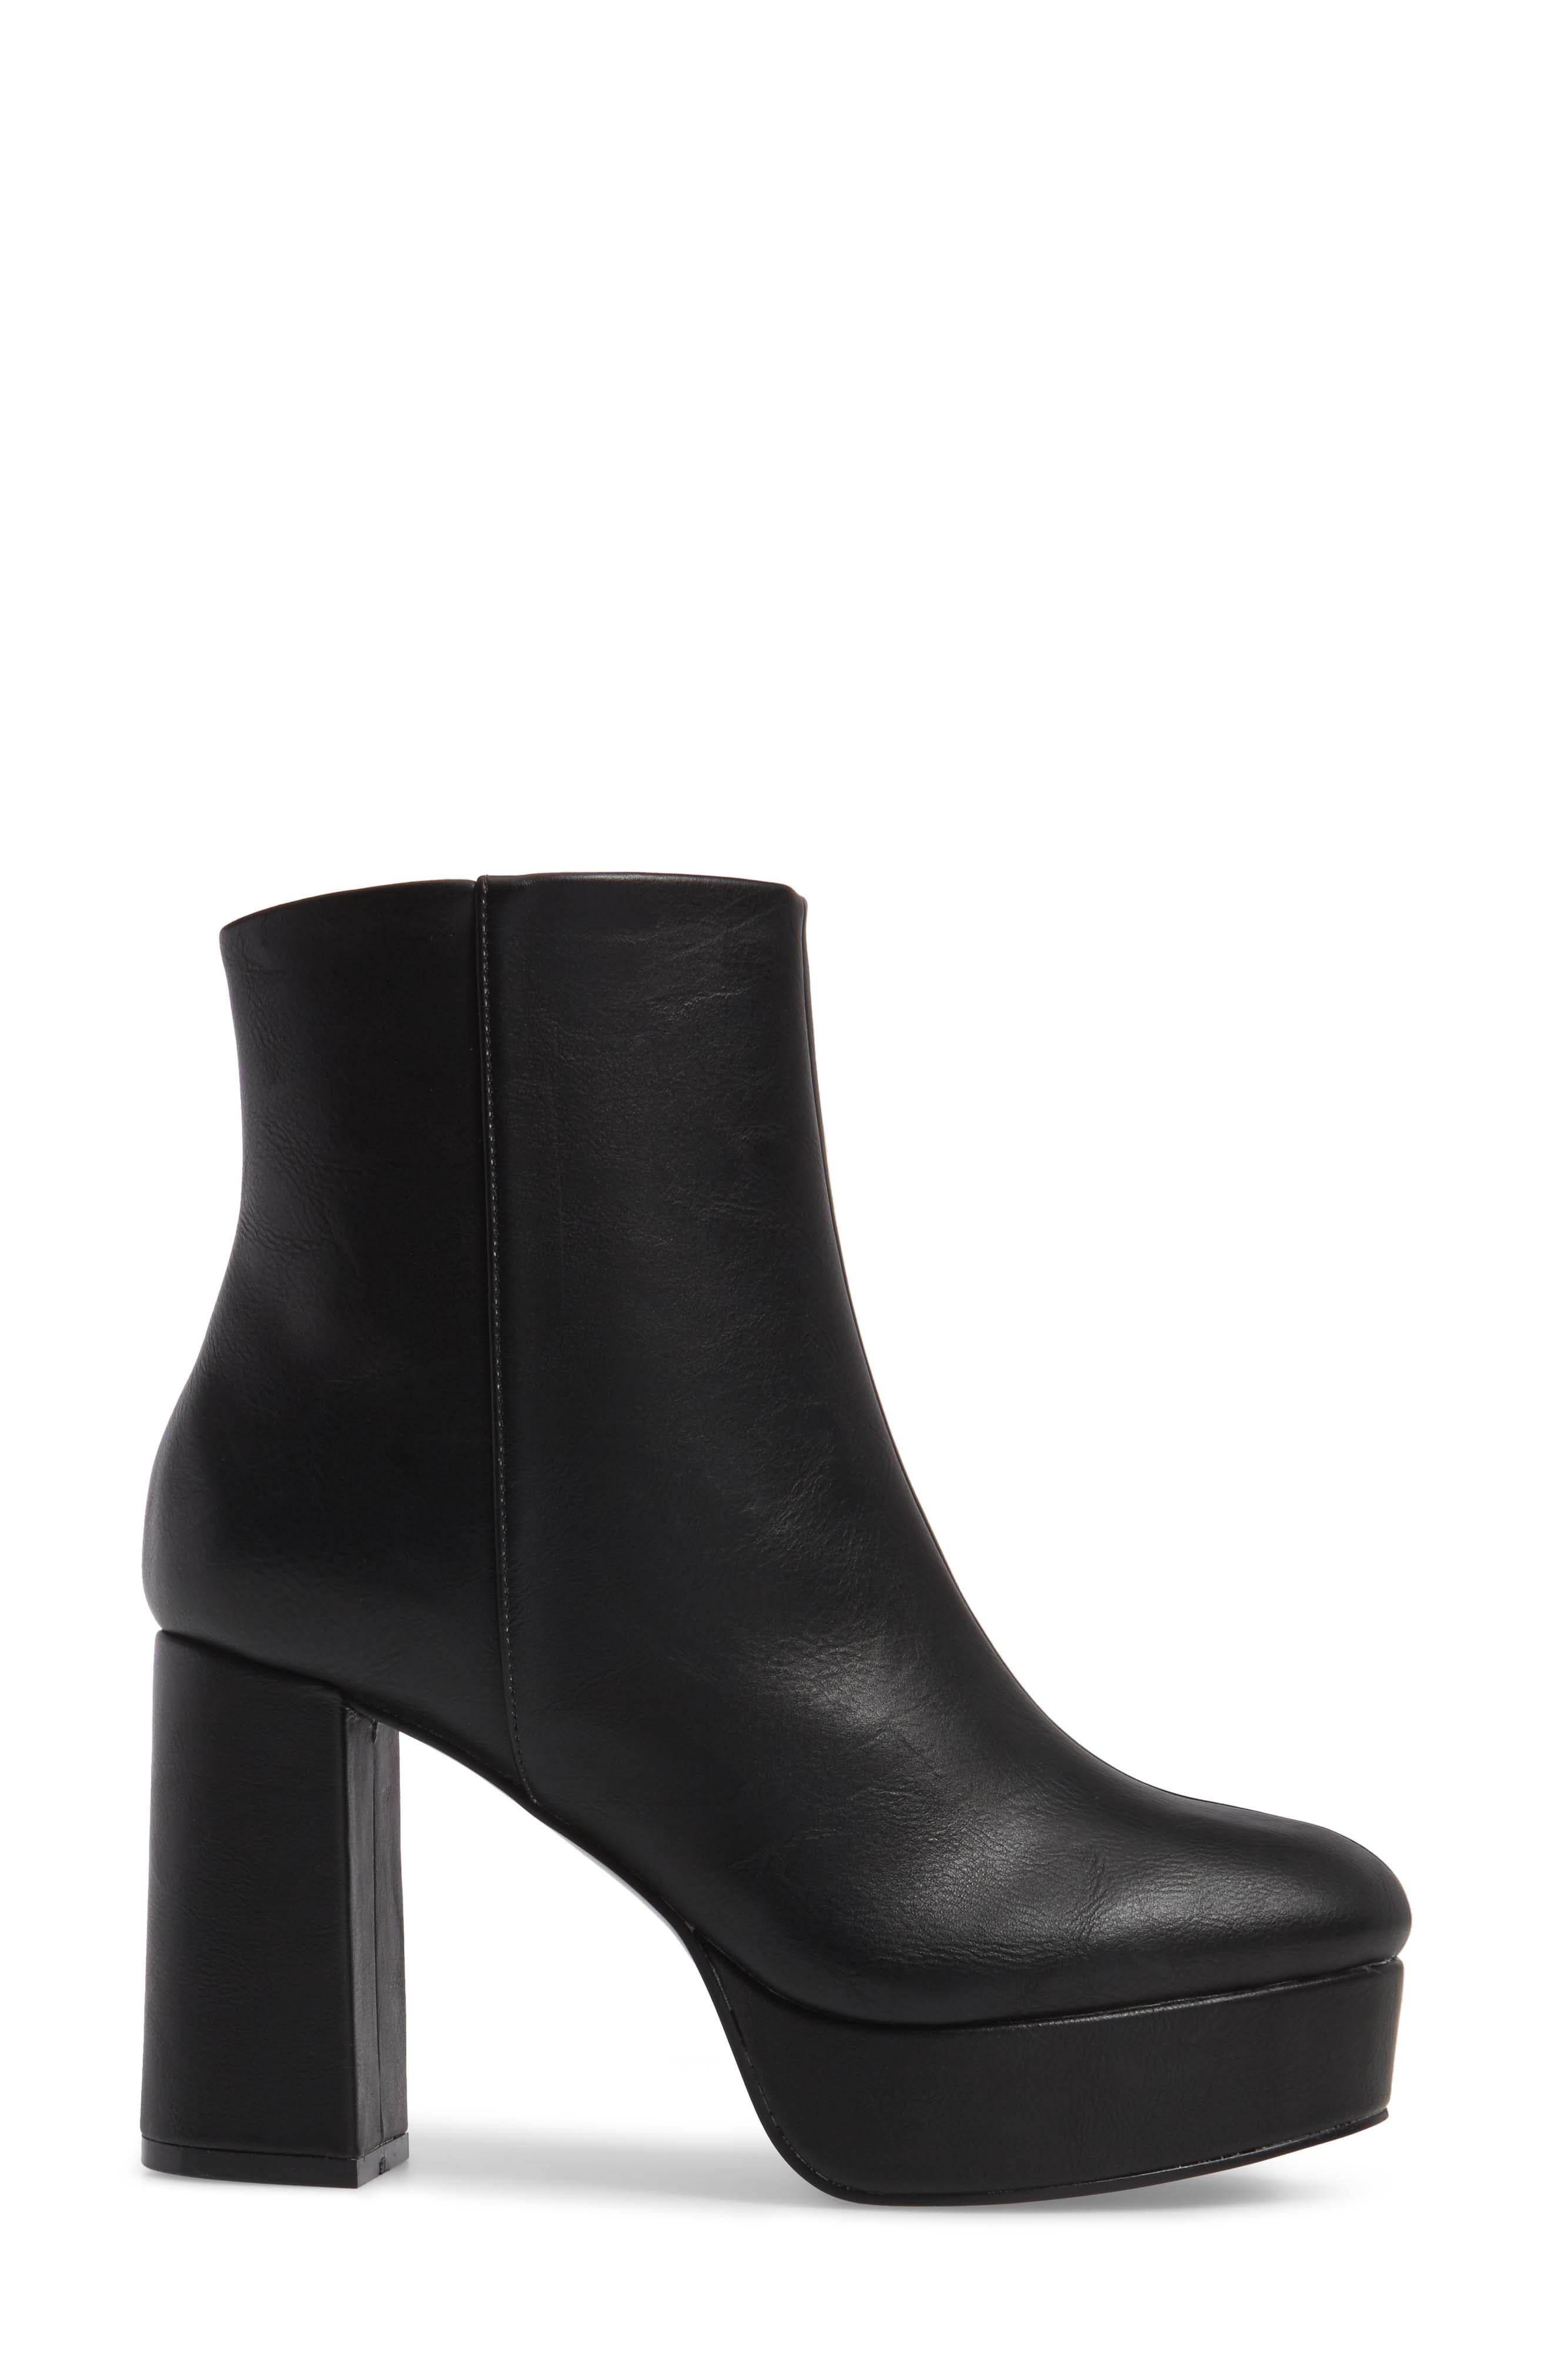 Nenna Platform Bootie,                             Alternate thumbnail 3, color,                             Black